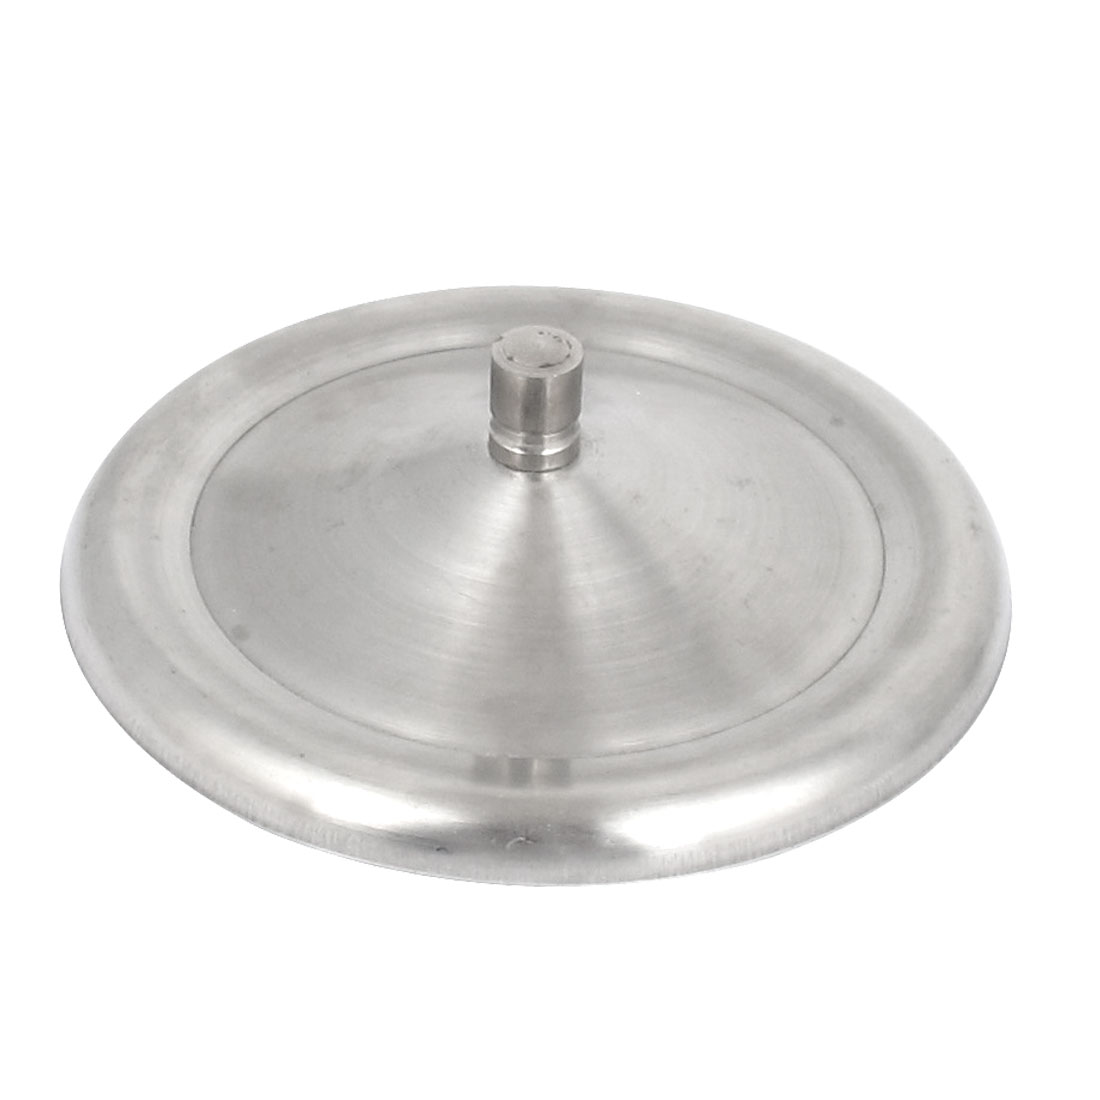 10.6cm Dia Round Shape Home Sealed Drink Cup Mug Lid Cap Cover Silver Tone